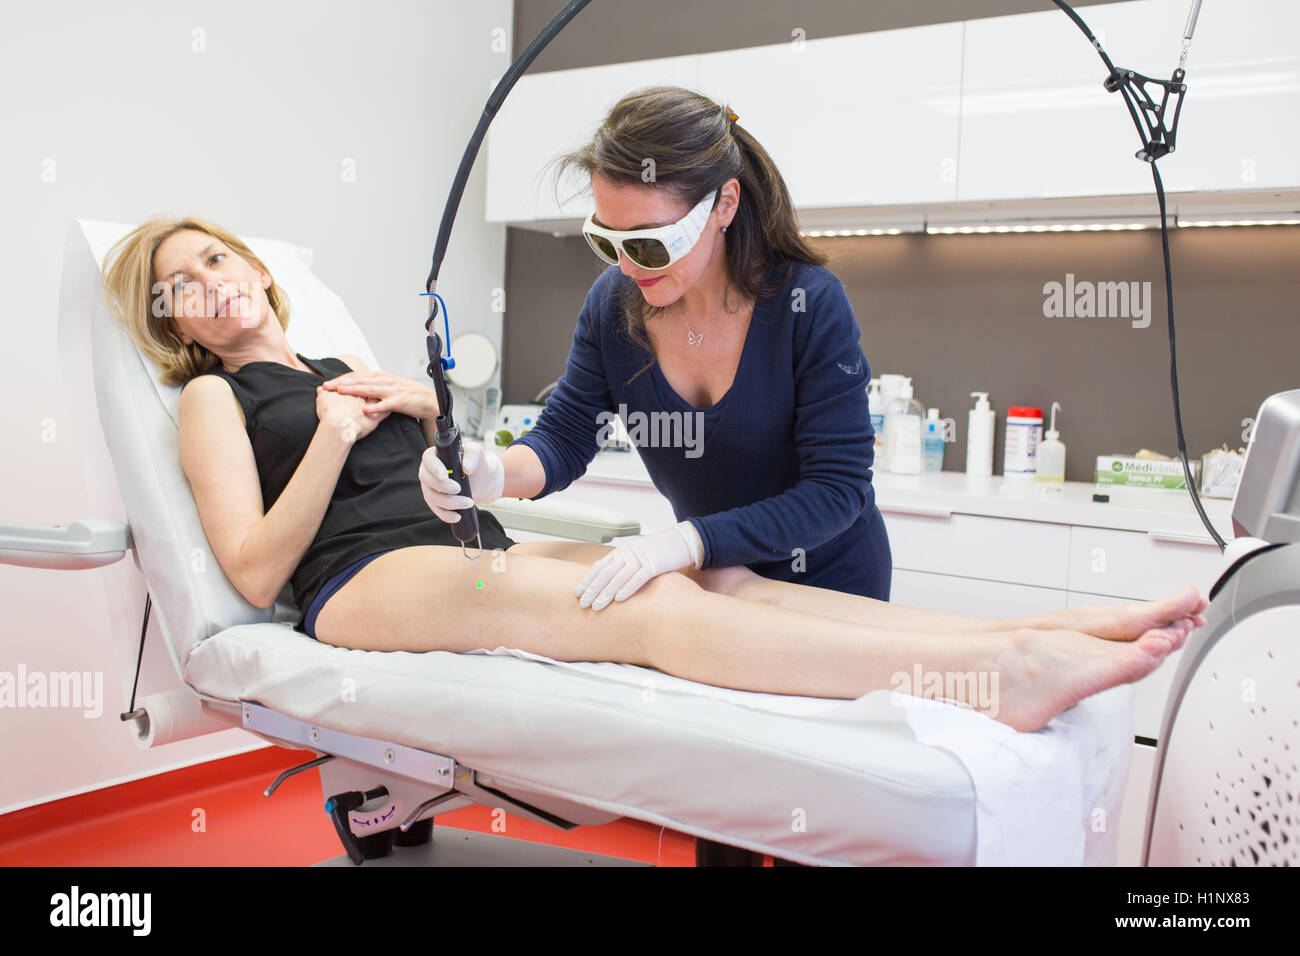 Vascular laser used in treatment of rosacea and varicosity. Stock Photo